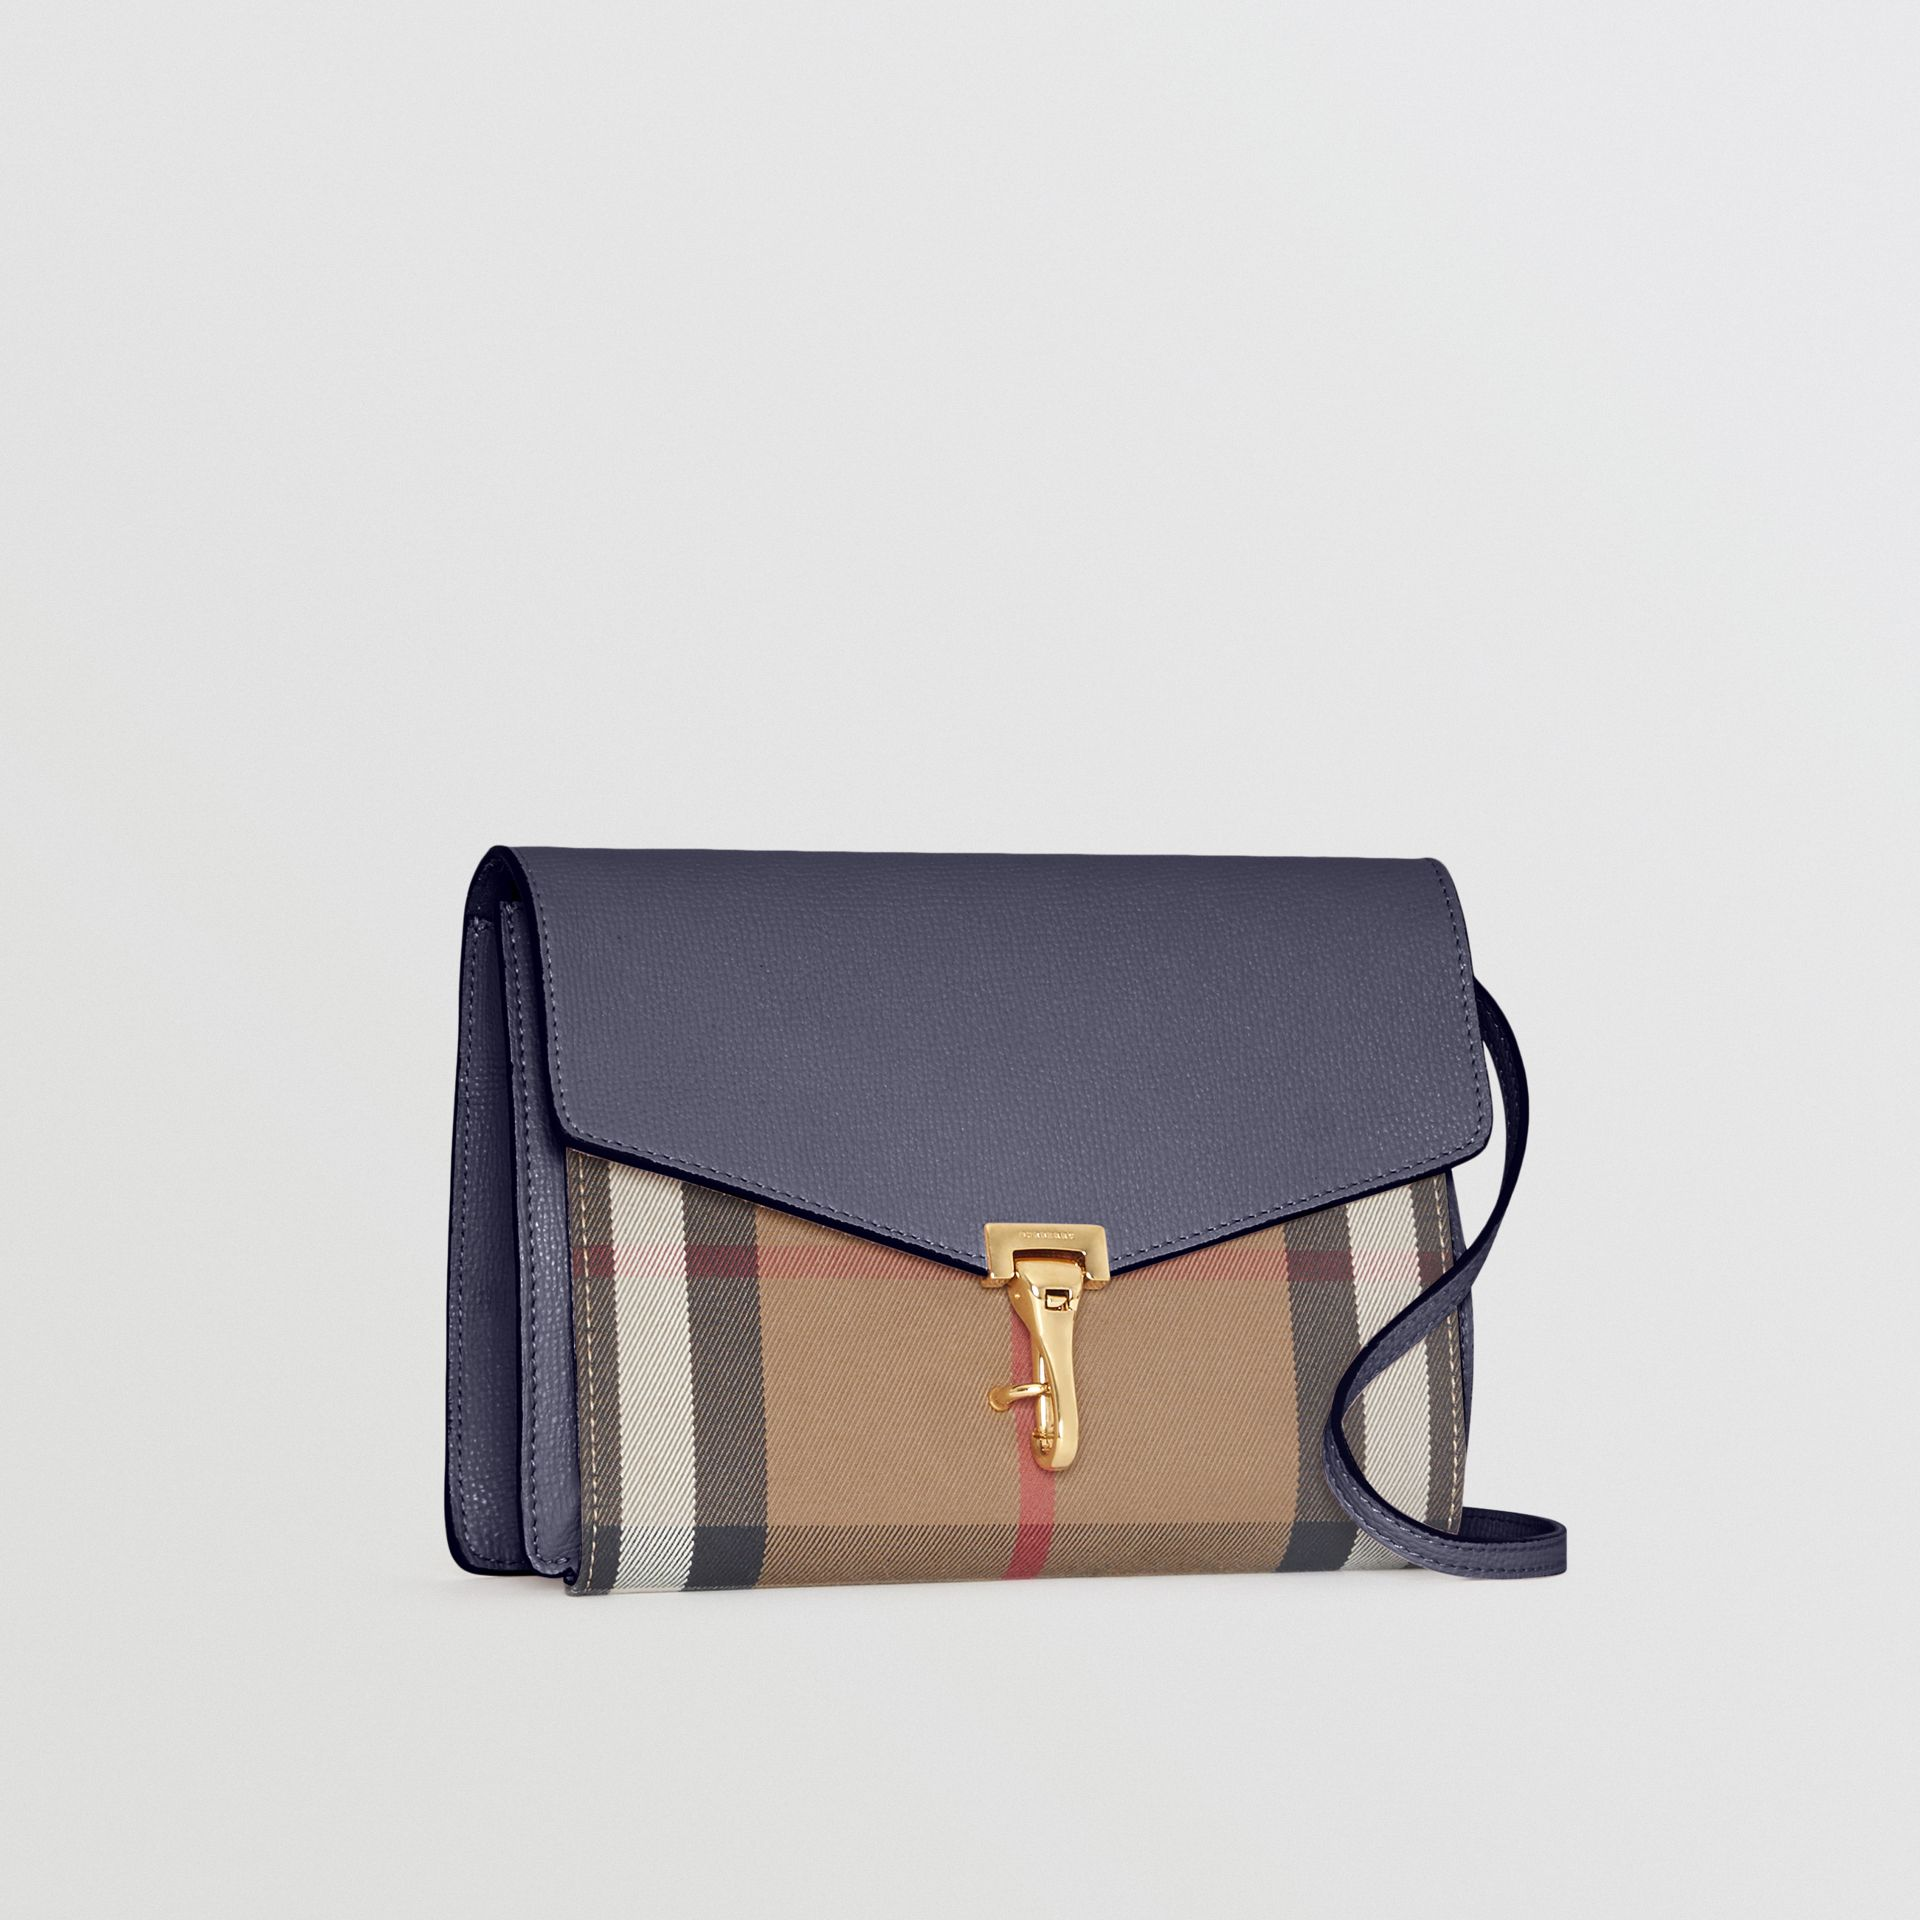 Small Leather and House Check Crossbody Bag in Ink Blue - Women | Burberry United Kingdom - gallery image 6